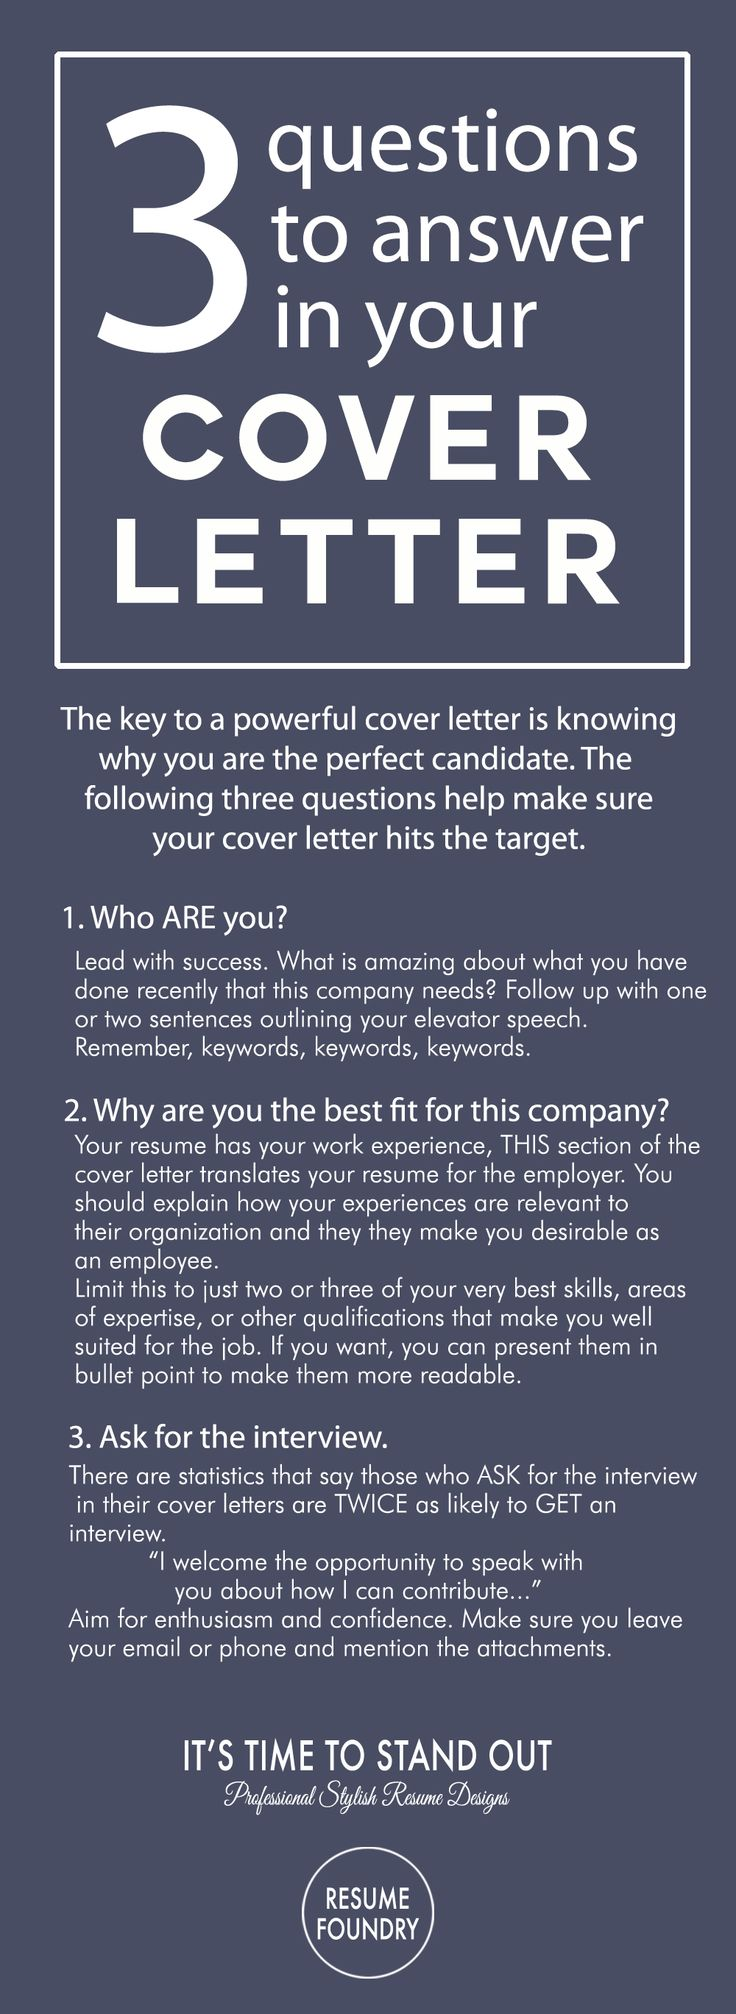 cover letter tips outline how to write a cover letter - Tips For Cover Letter Writing